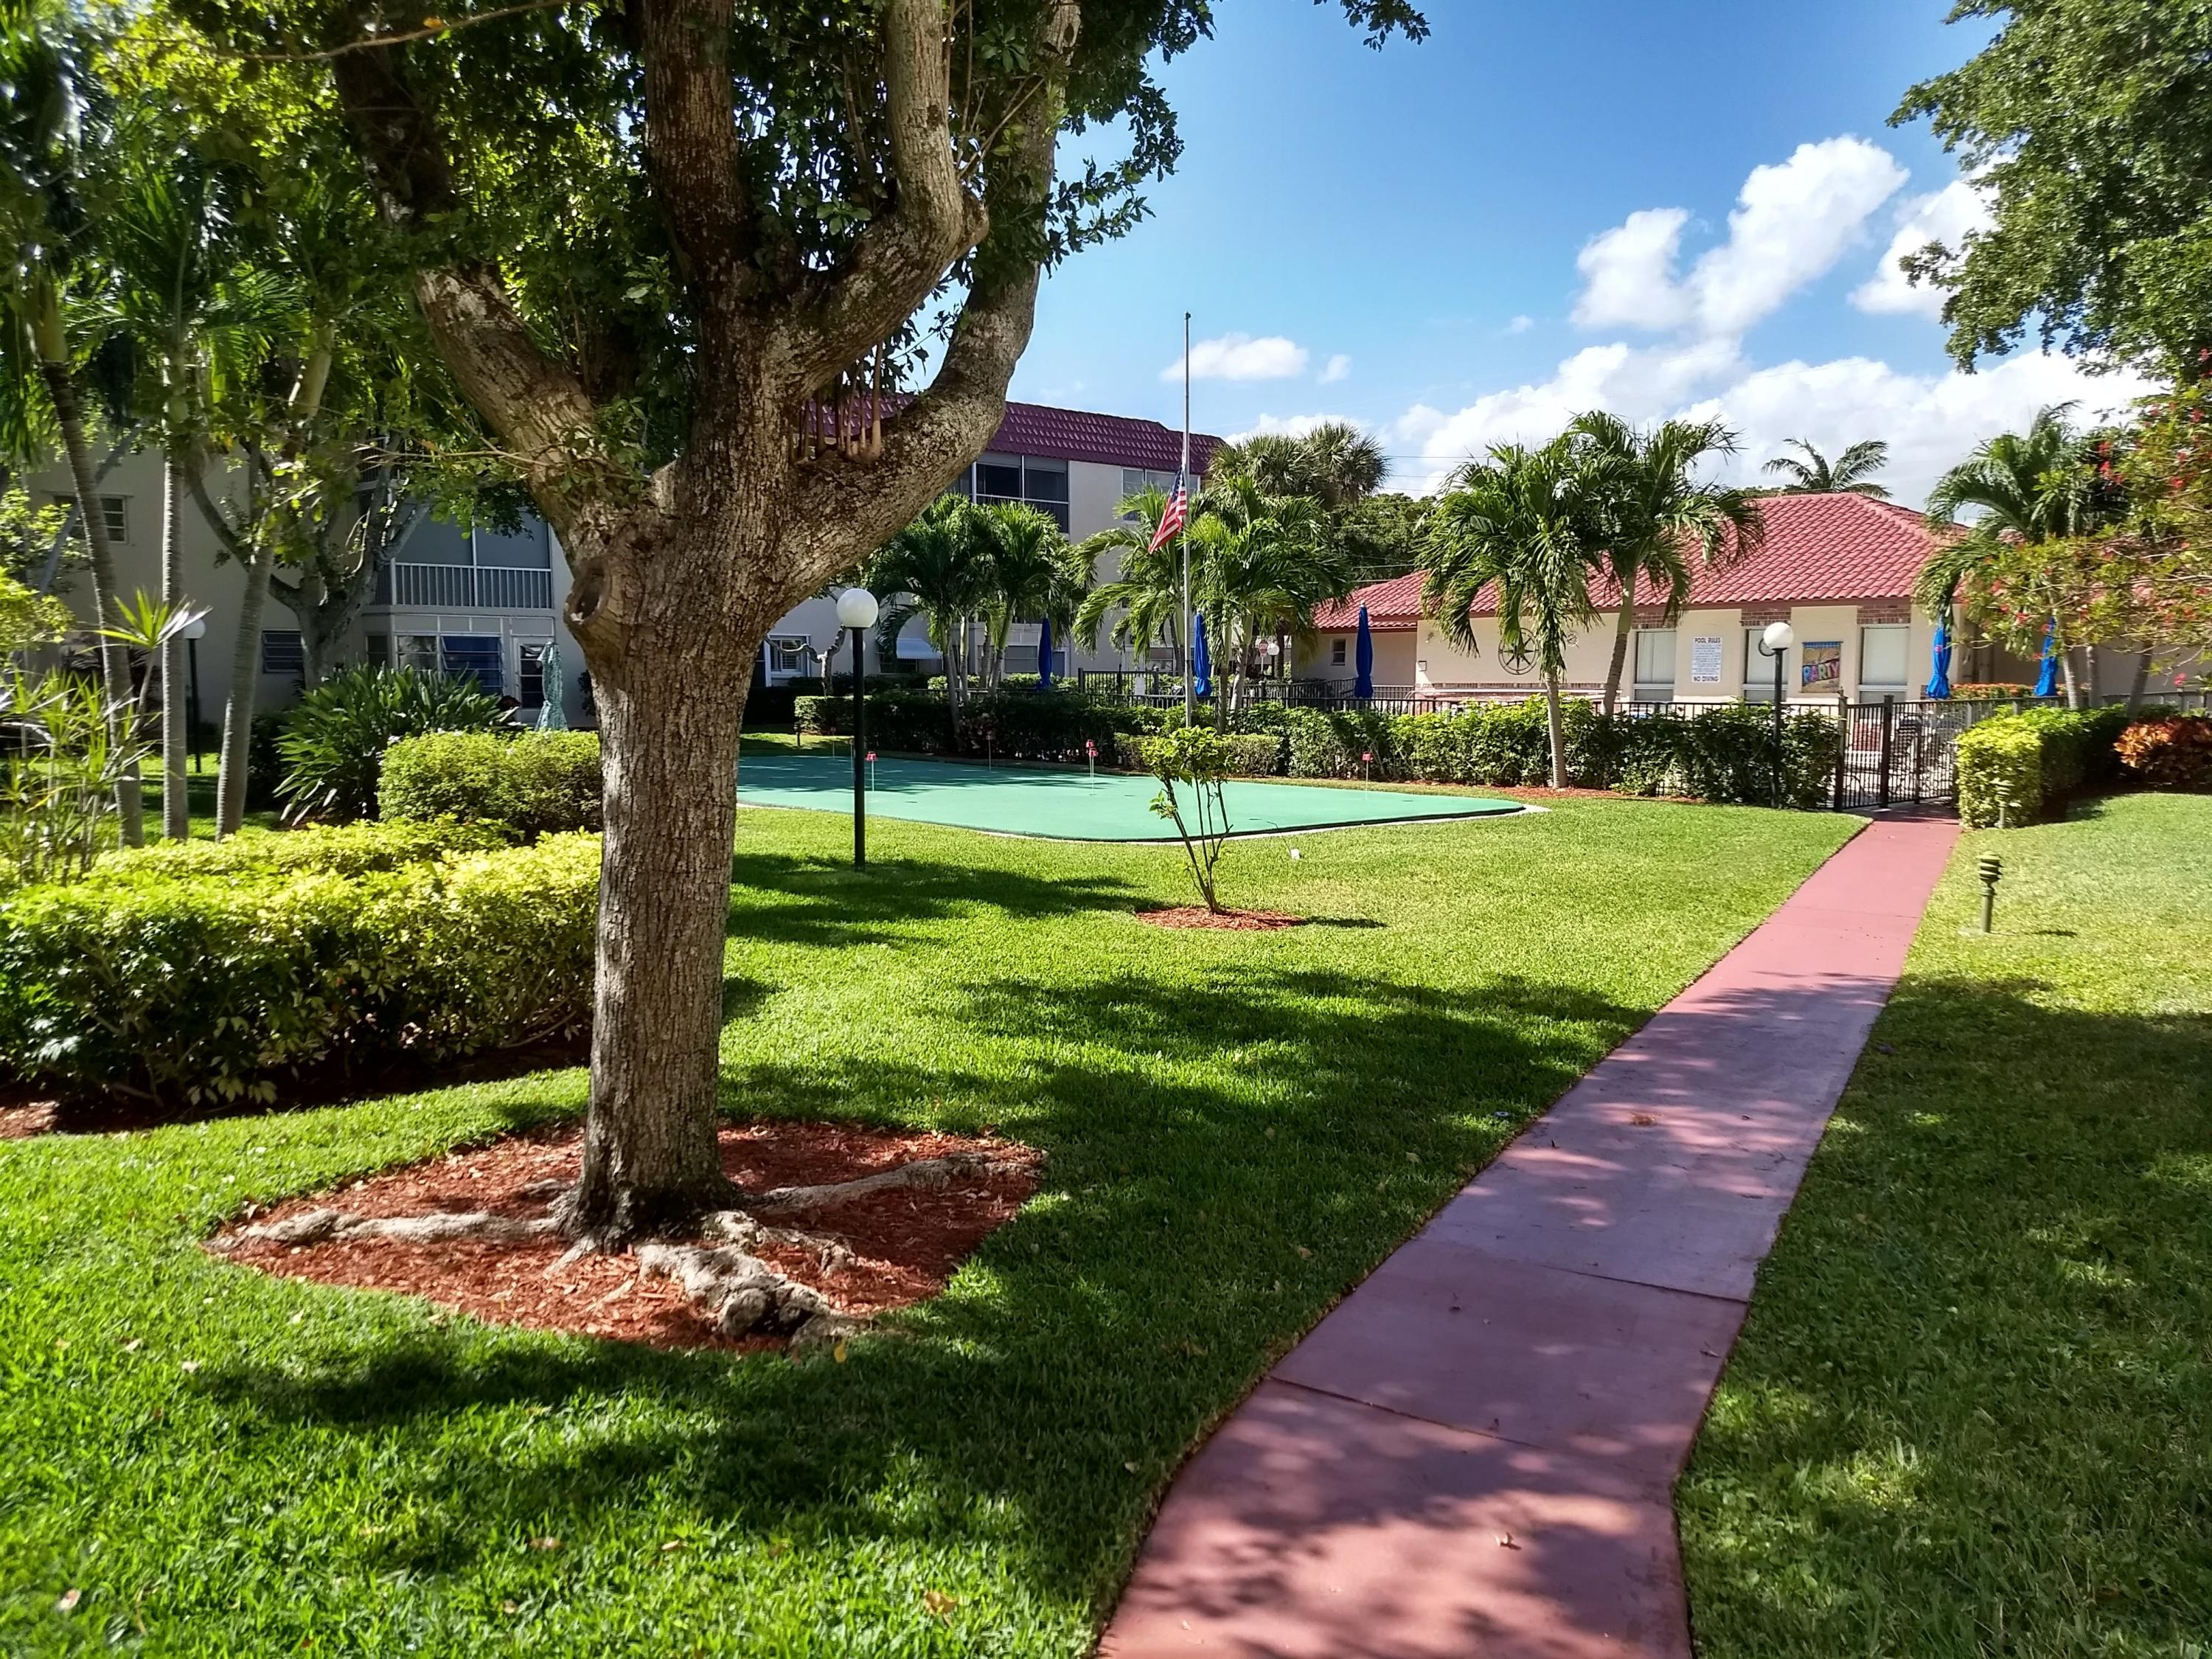 Deerfield Beach, 750 SE 6th Unit 128, Deerfield Beach, Florida 33441